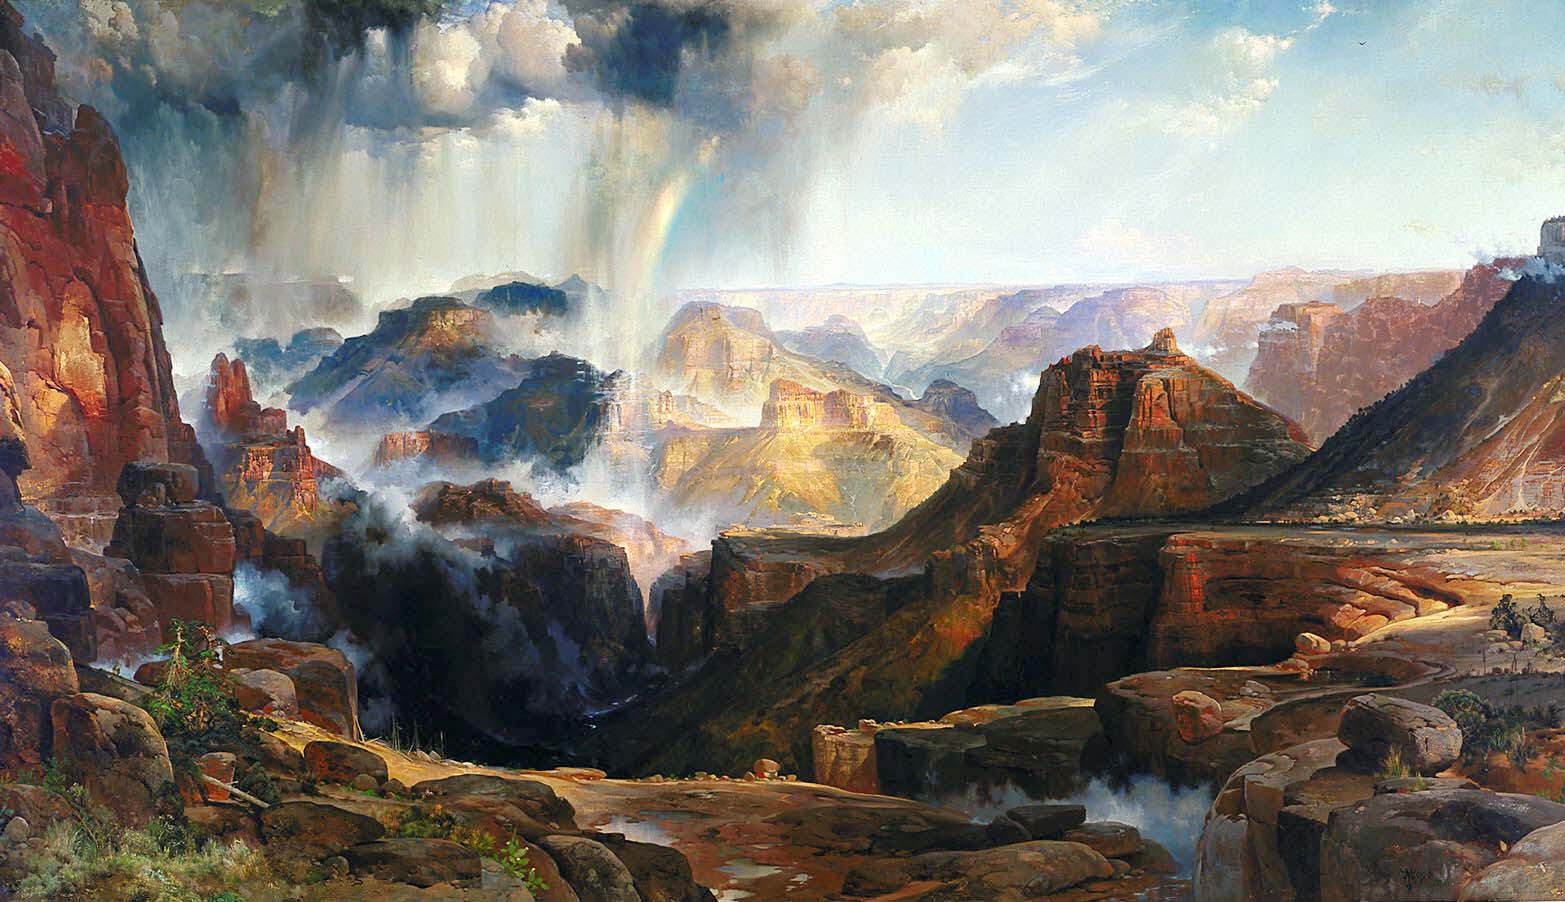 Yosemite Falls Wallpaper 19th Century American Paintings Thomas Moran Ctd